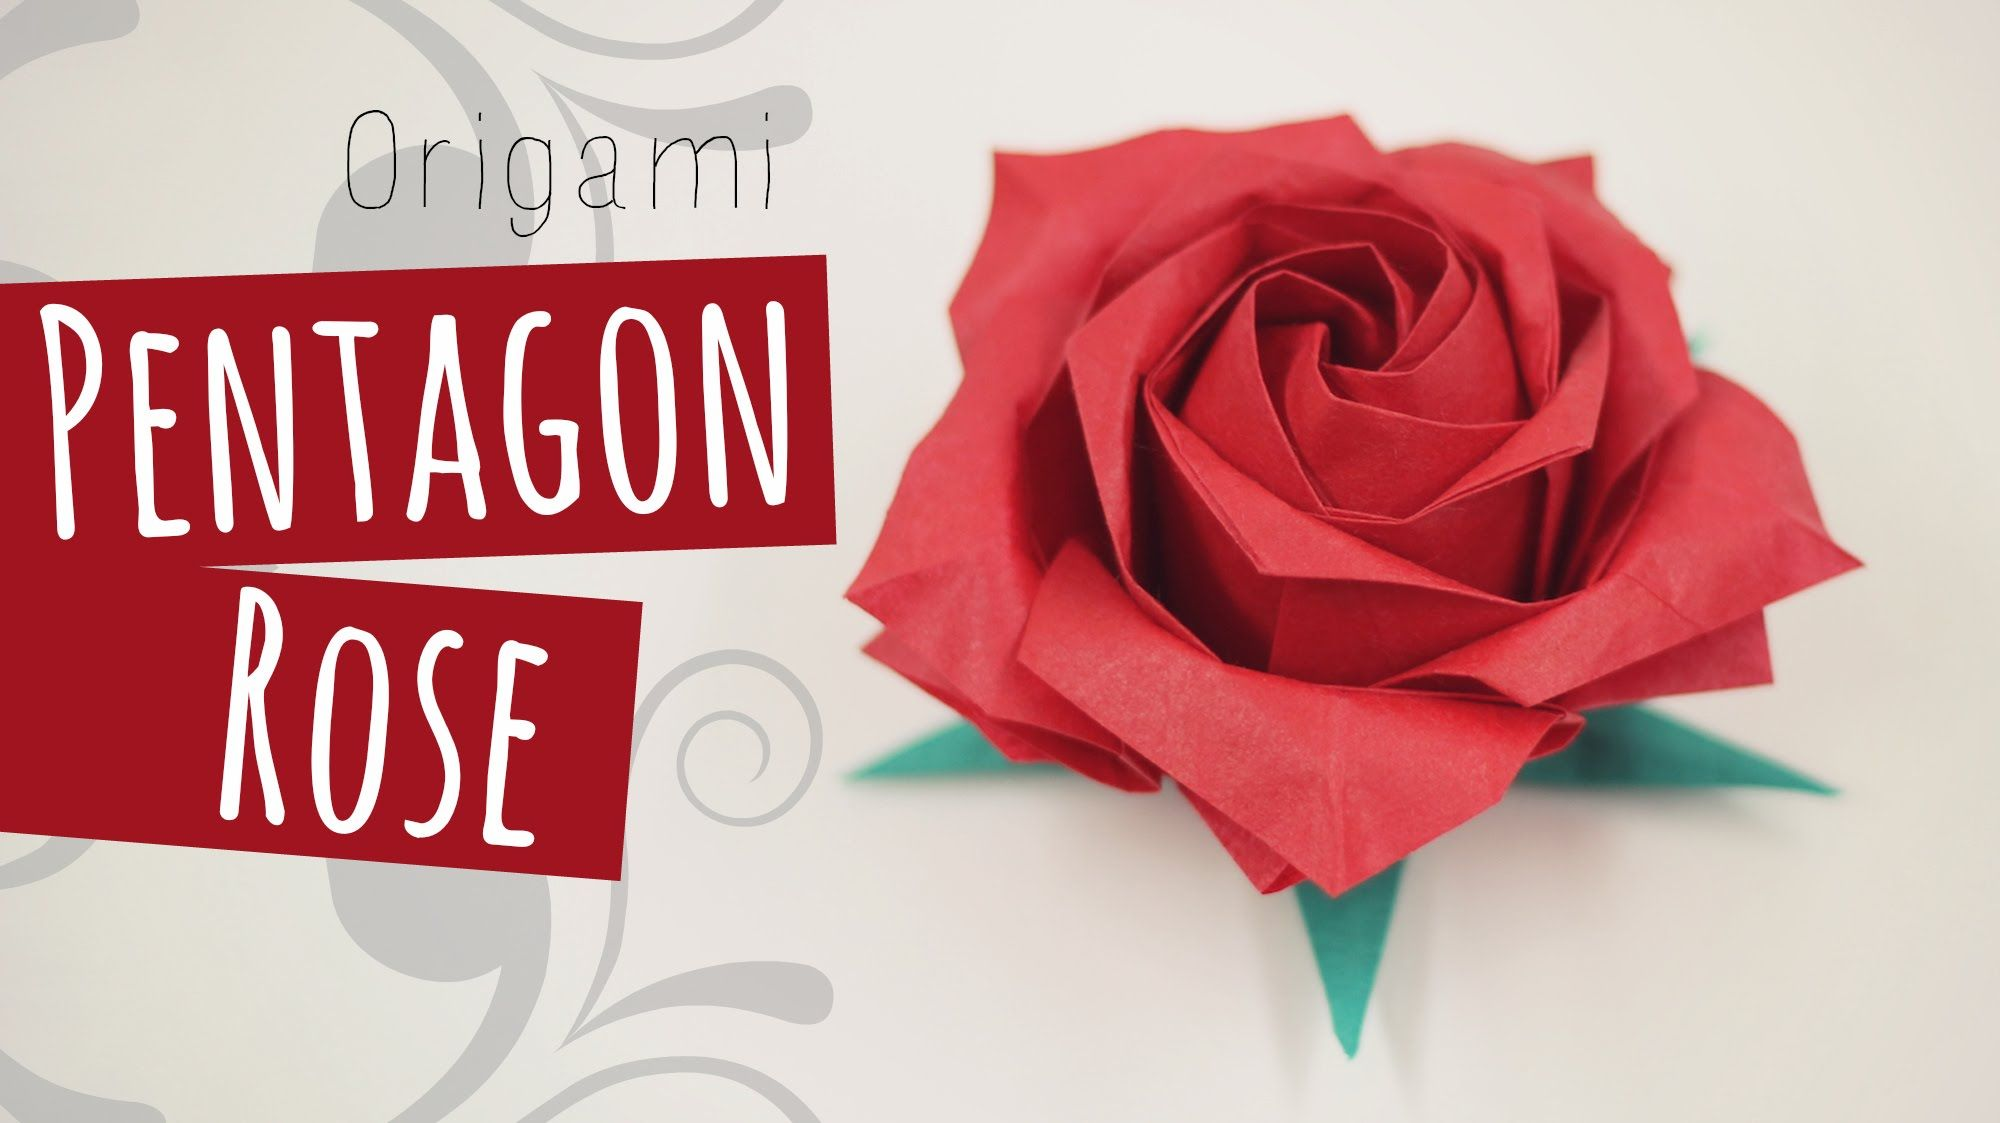 Origami Pentagon Rose tutorial. Intermediate level origami ... - photo#8